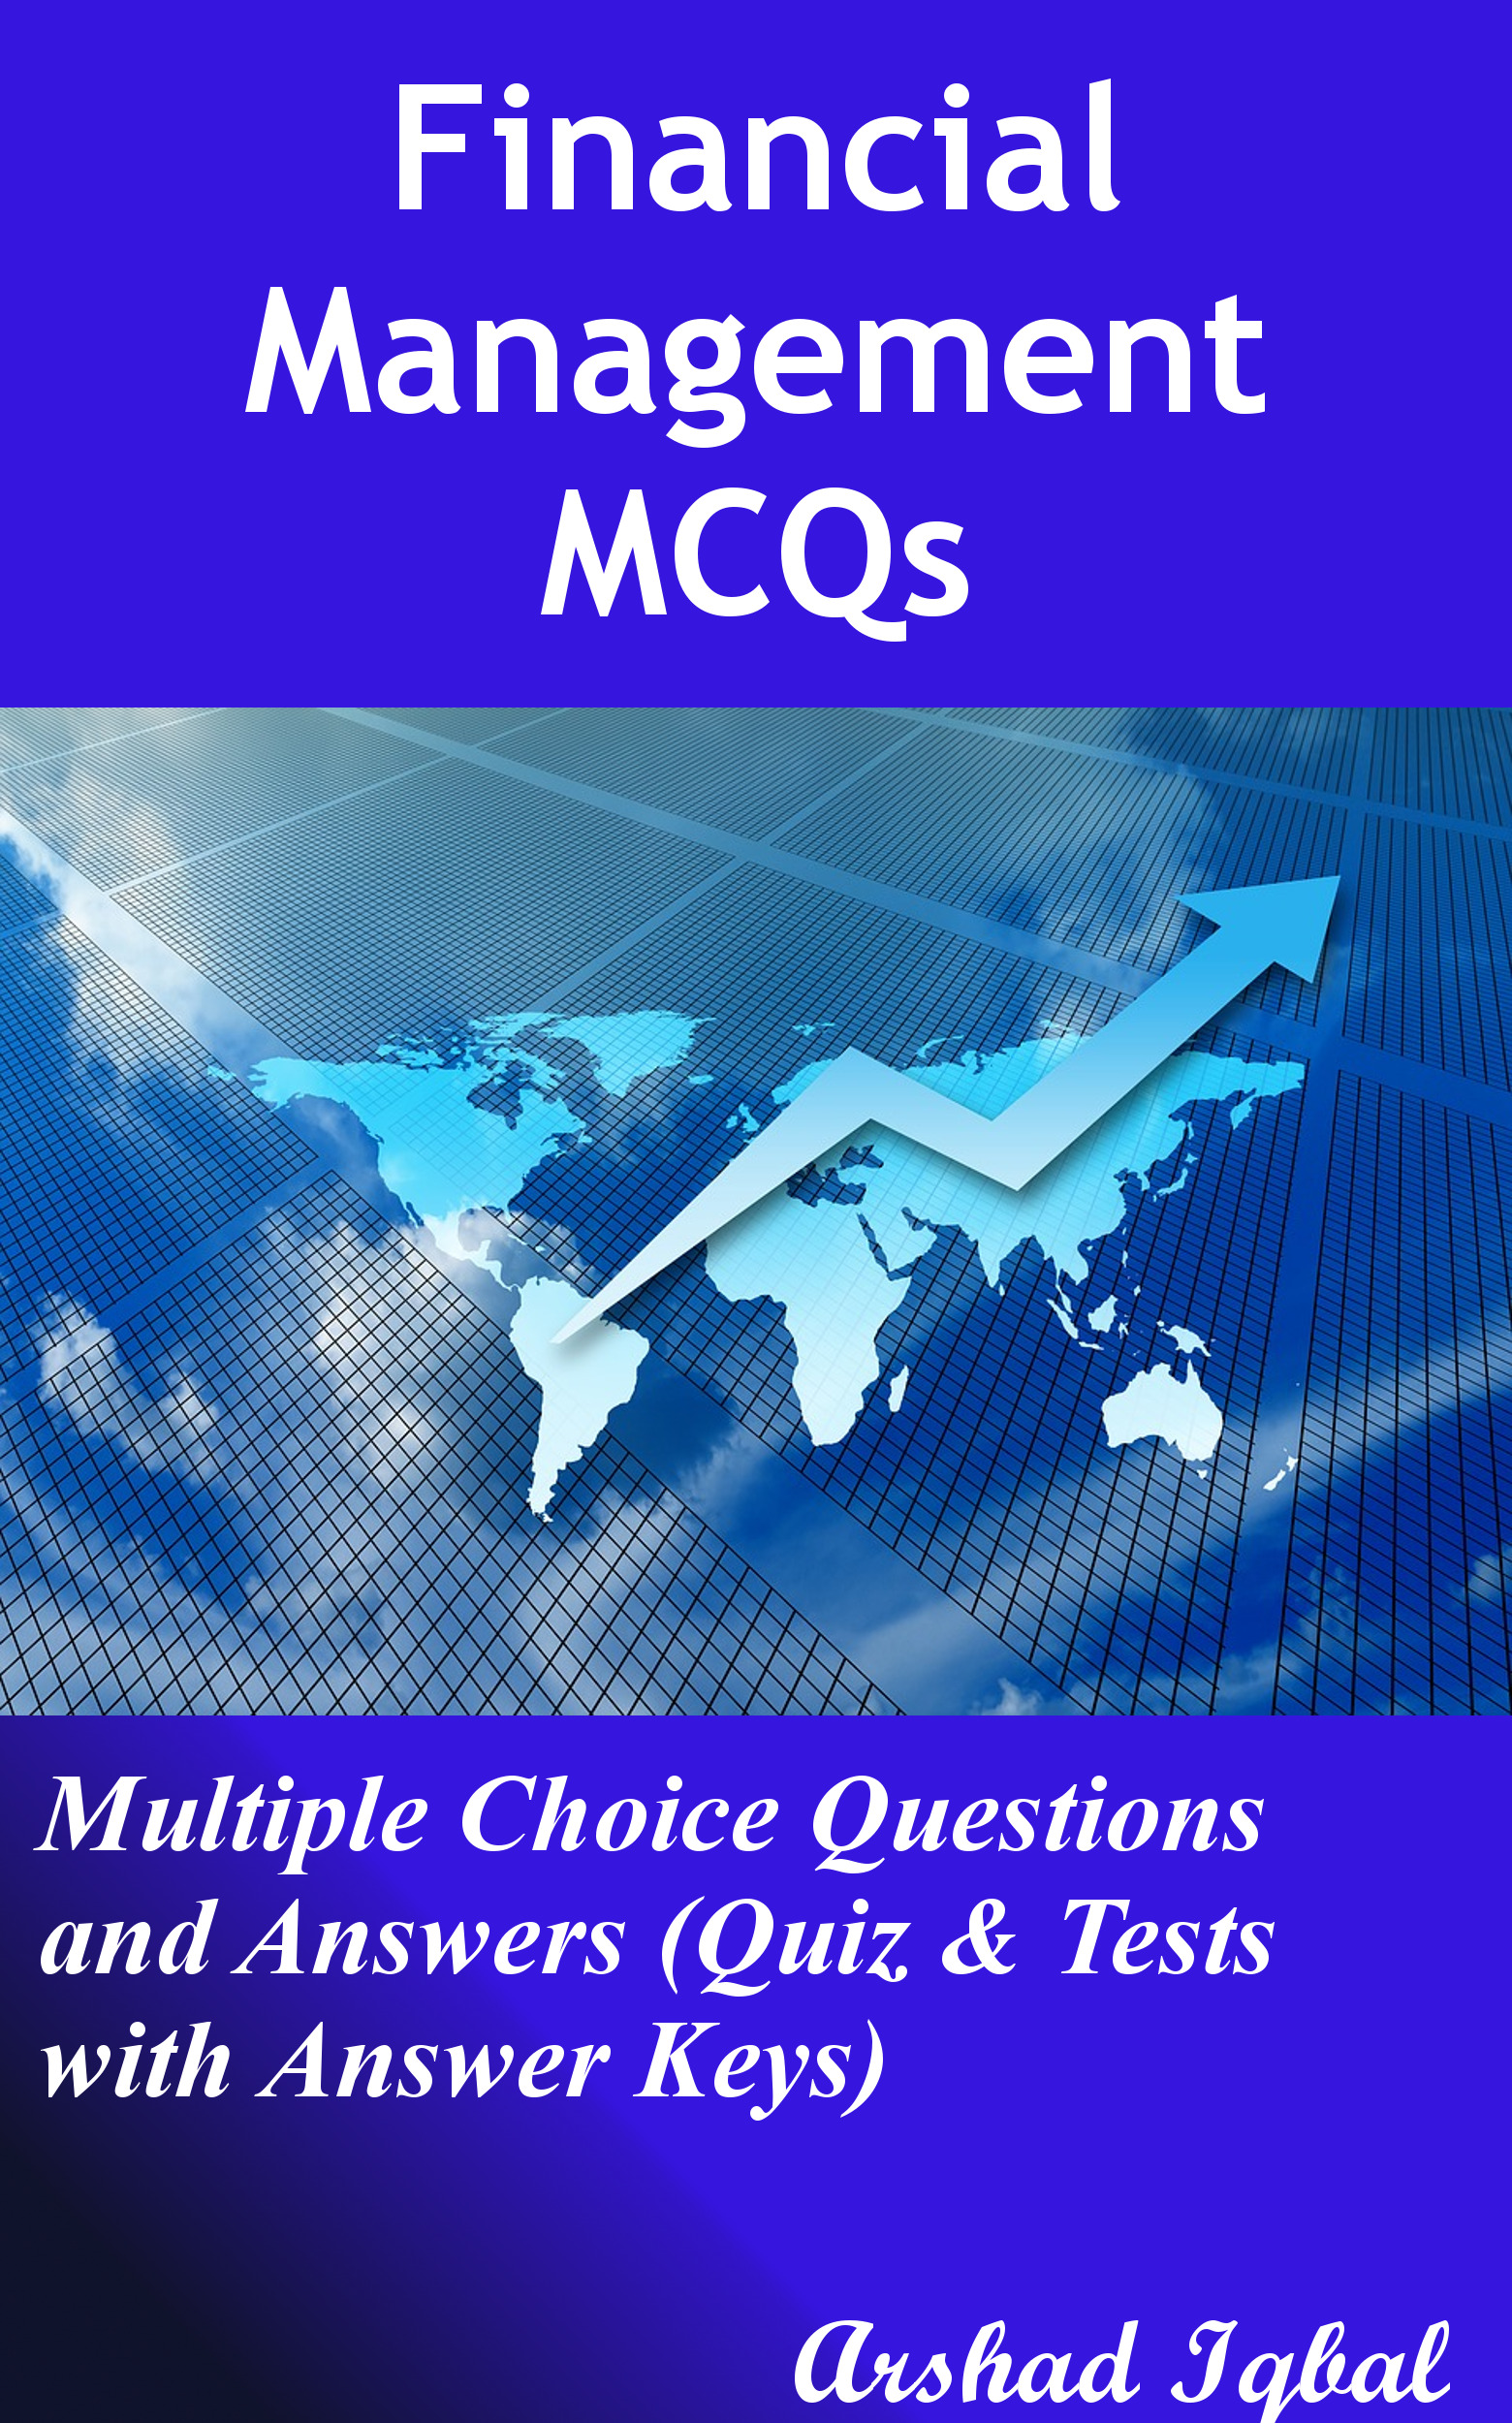 finance test questions with answers This is the current affairs questions and answers section on finance with explanation for various interview, competitive examination and entrance test indiabix provides you lots of fully solved current affairs (finance) questions and answers with explanation.